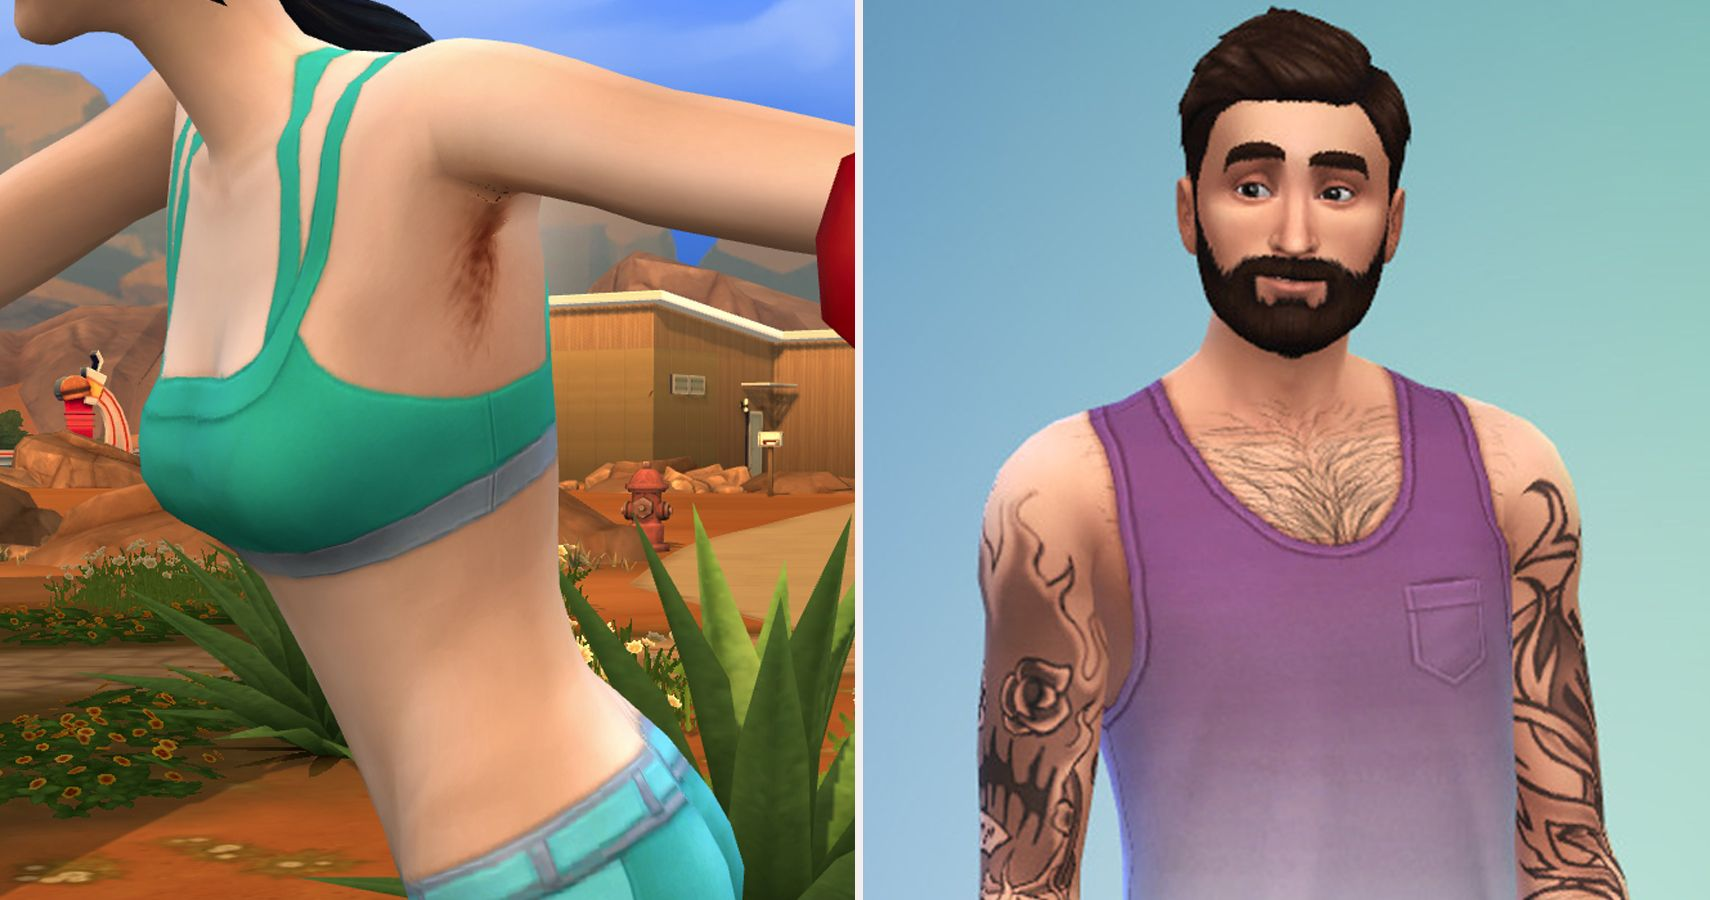 Sims 4 10 Must Have Body Hair Cc For Realistic Sims Thegamer